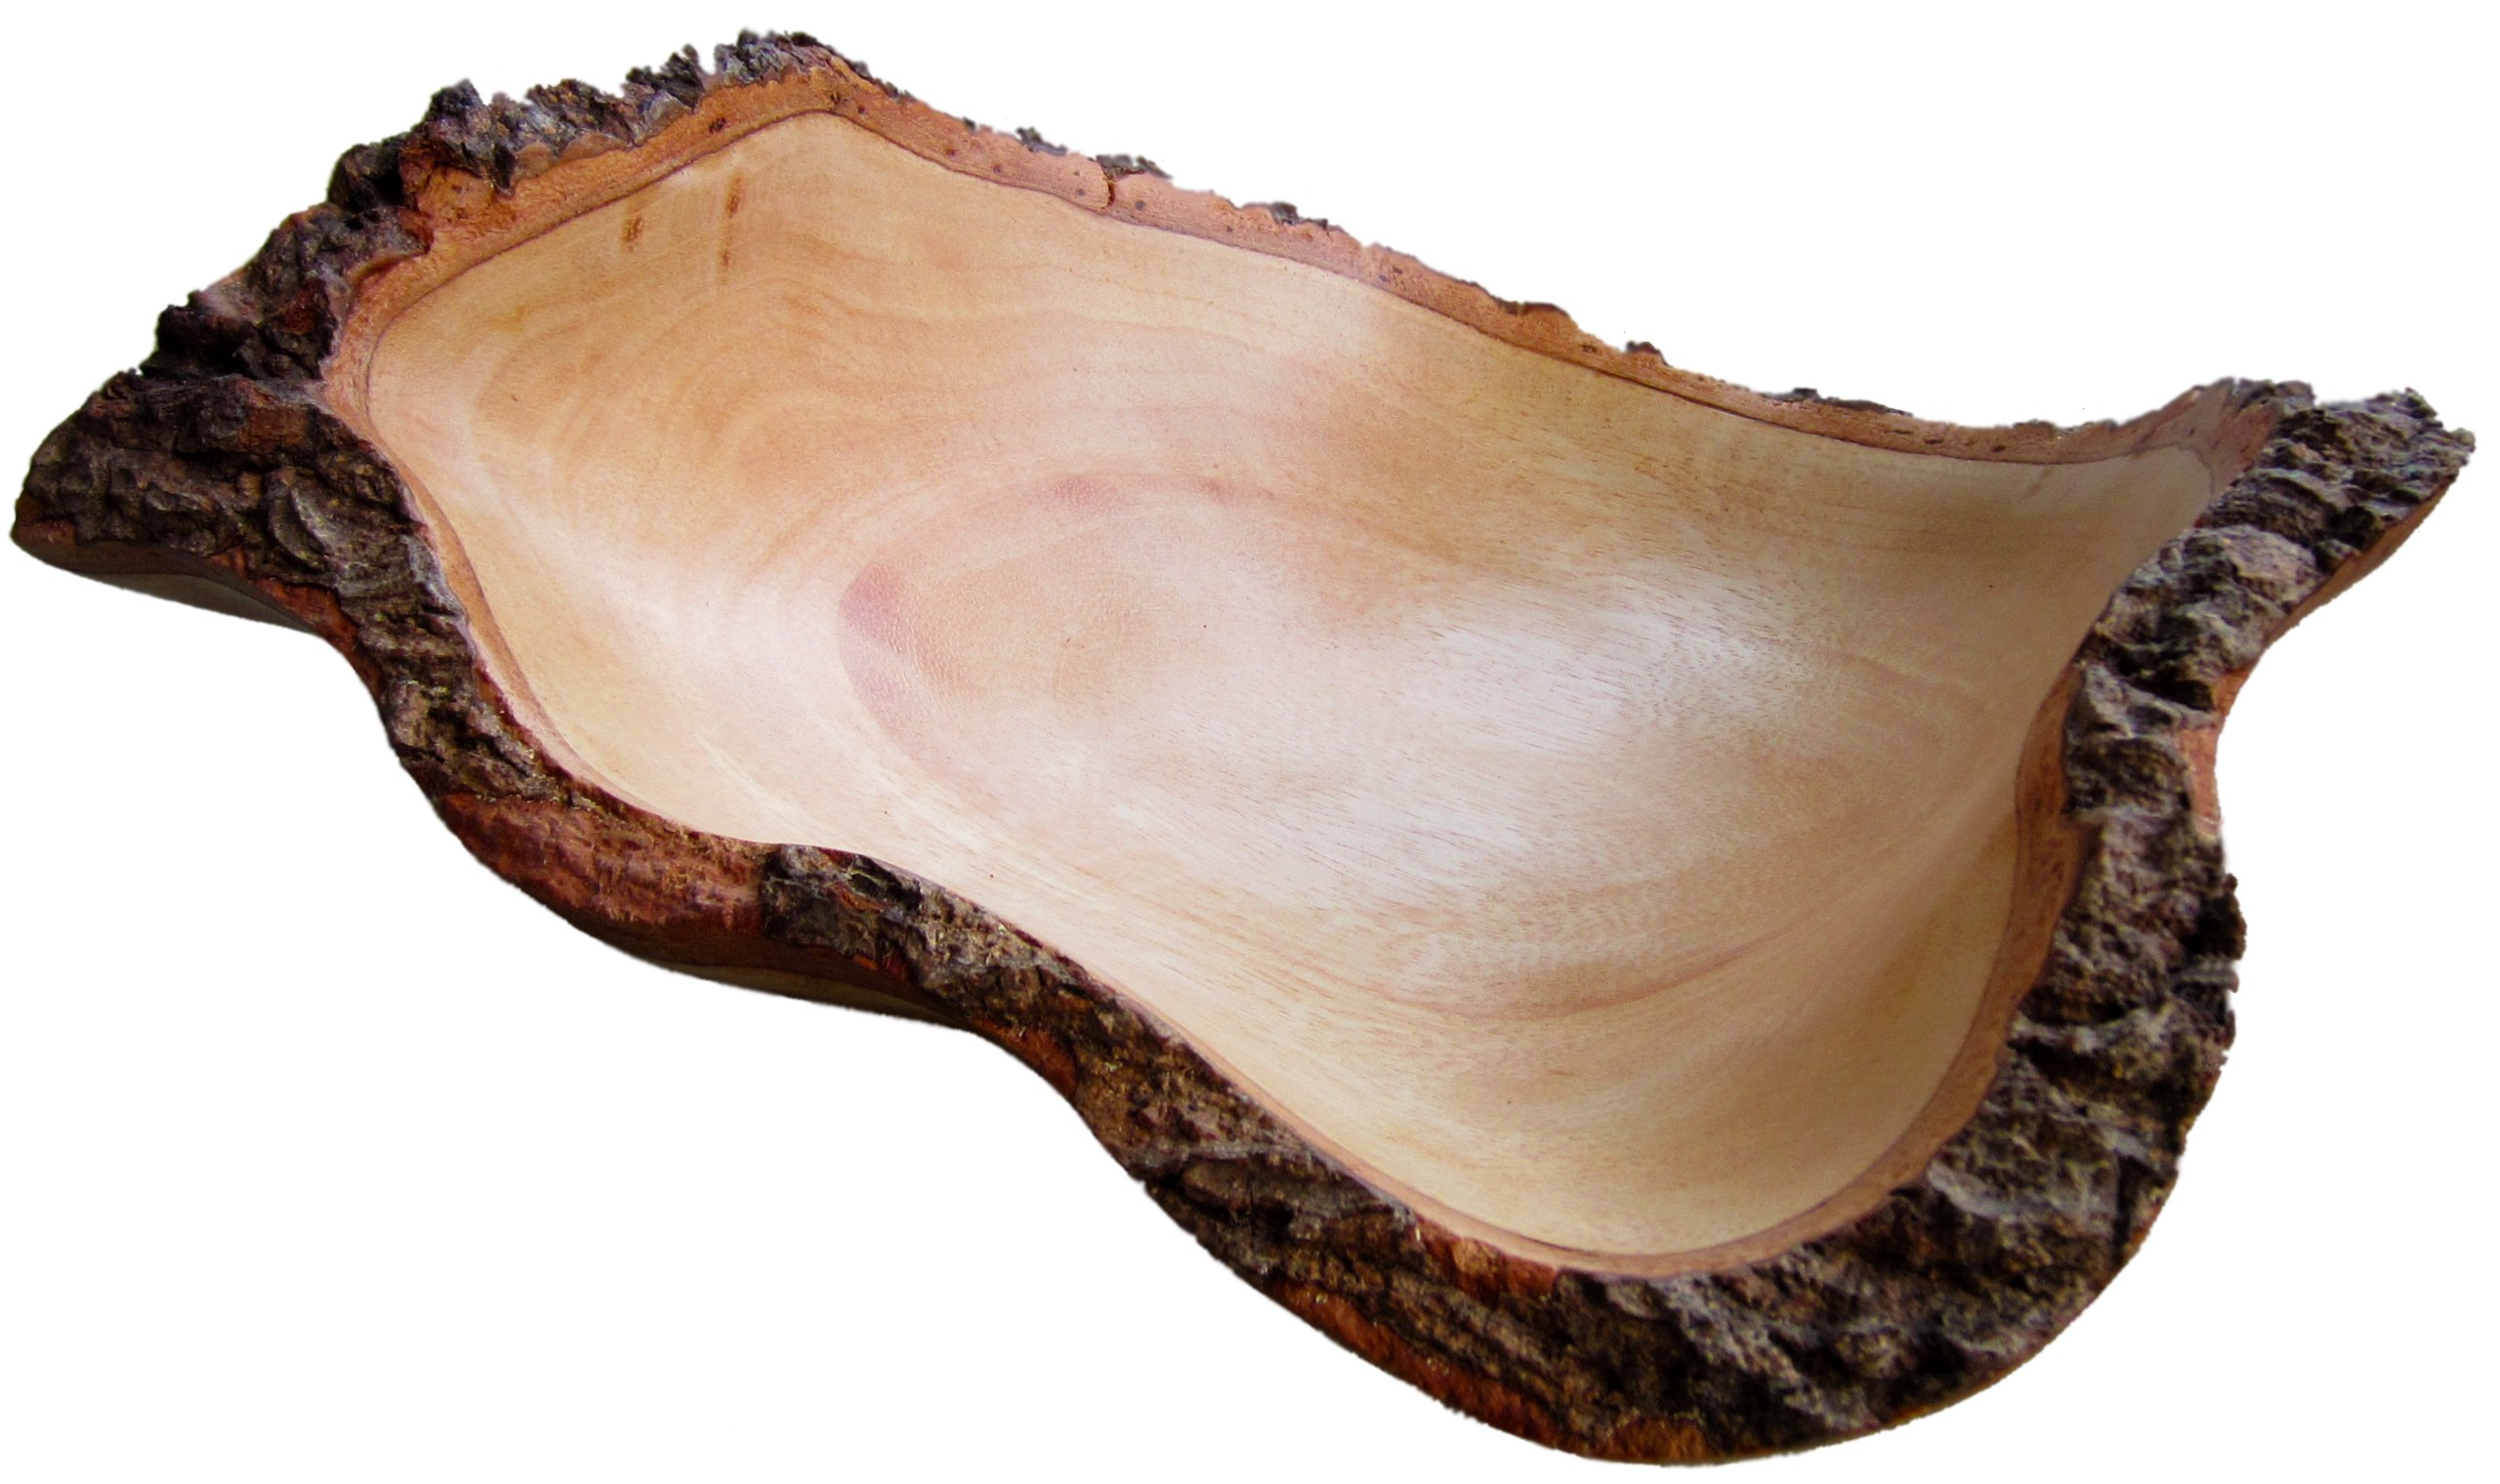 roro 10 In Mango Wood Fruit Bowl with Bark Edges Made from Sustainable Orchard Wood by roro